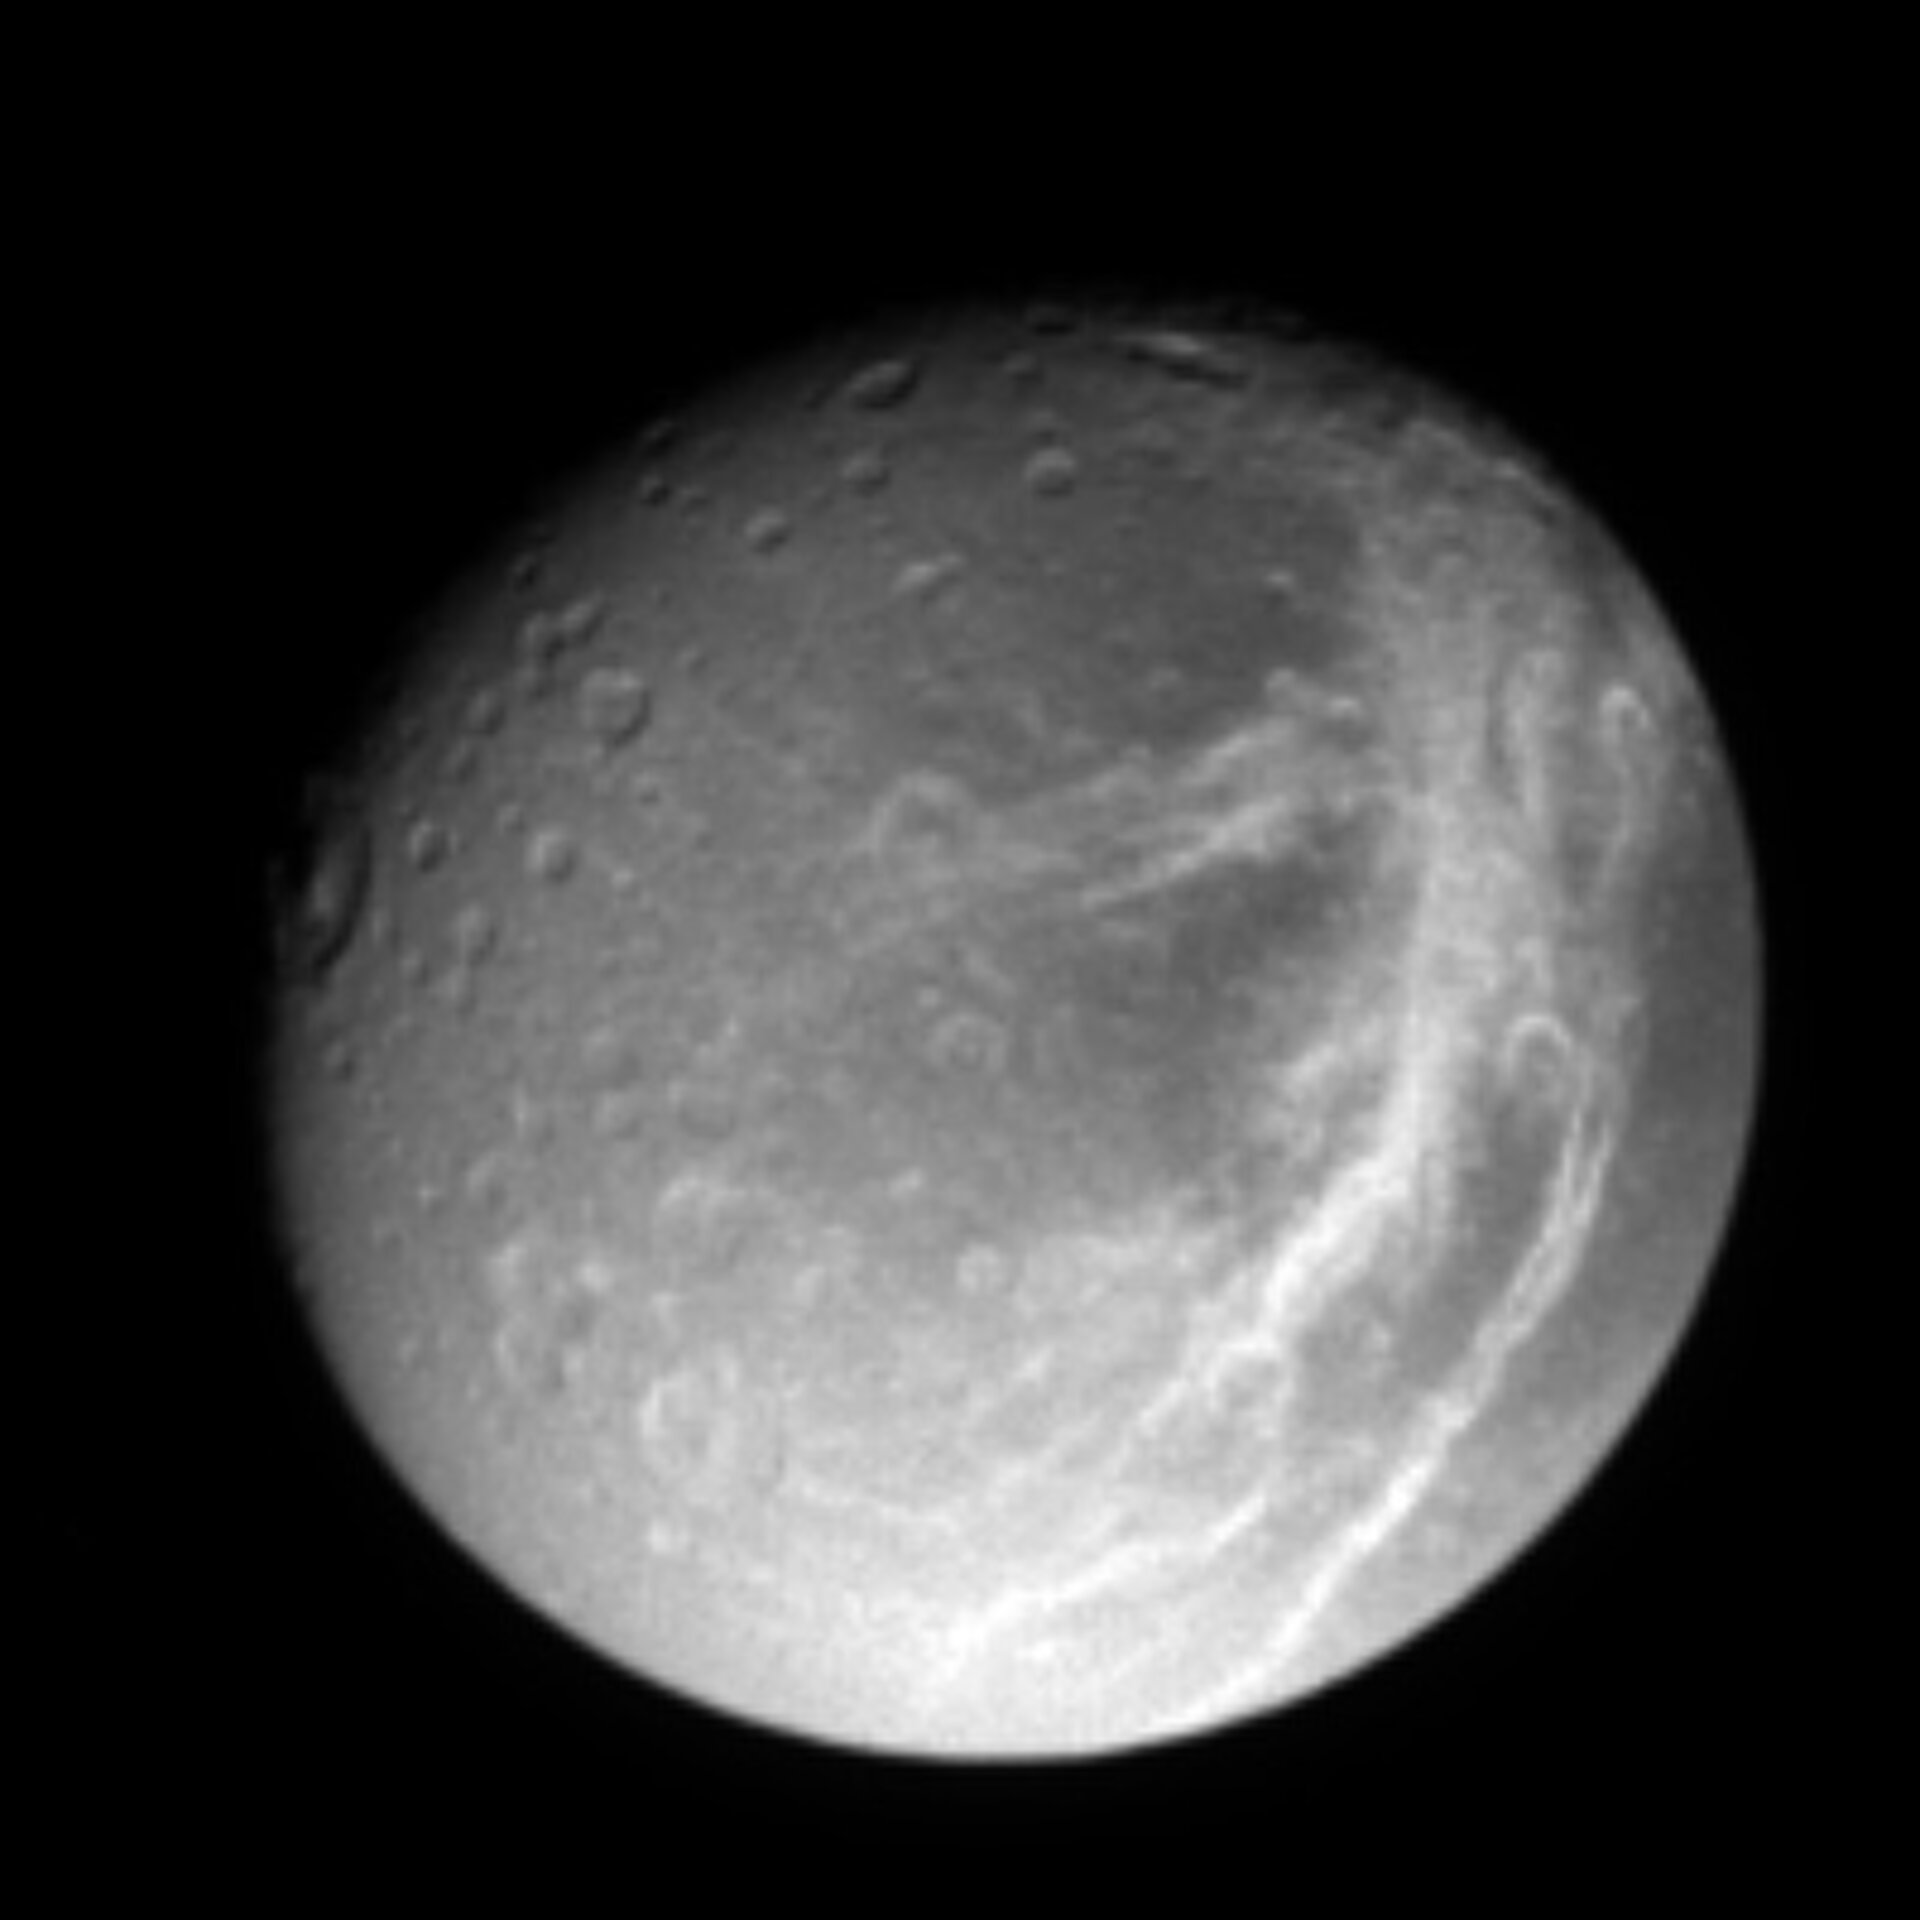 Dione's criss-crossing streaks